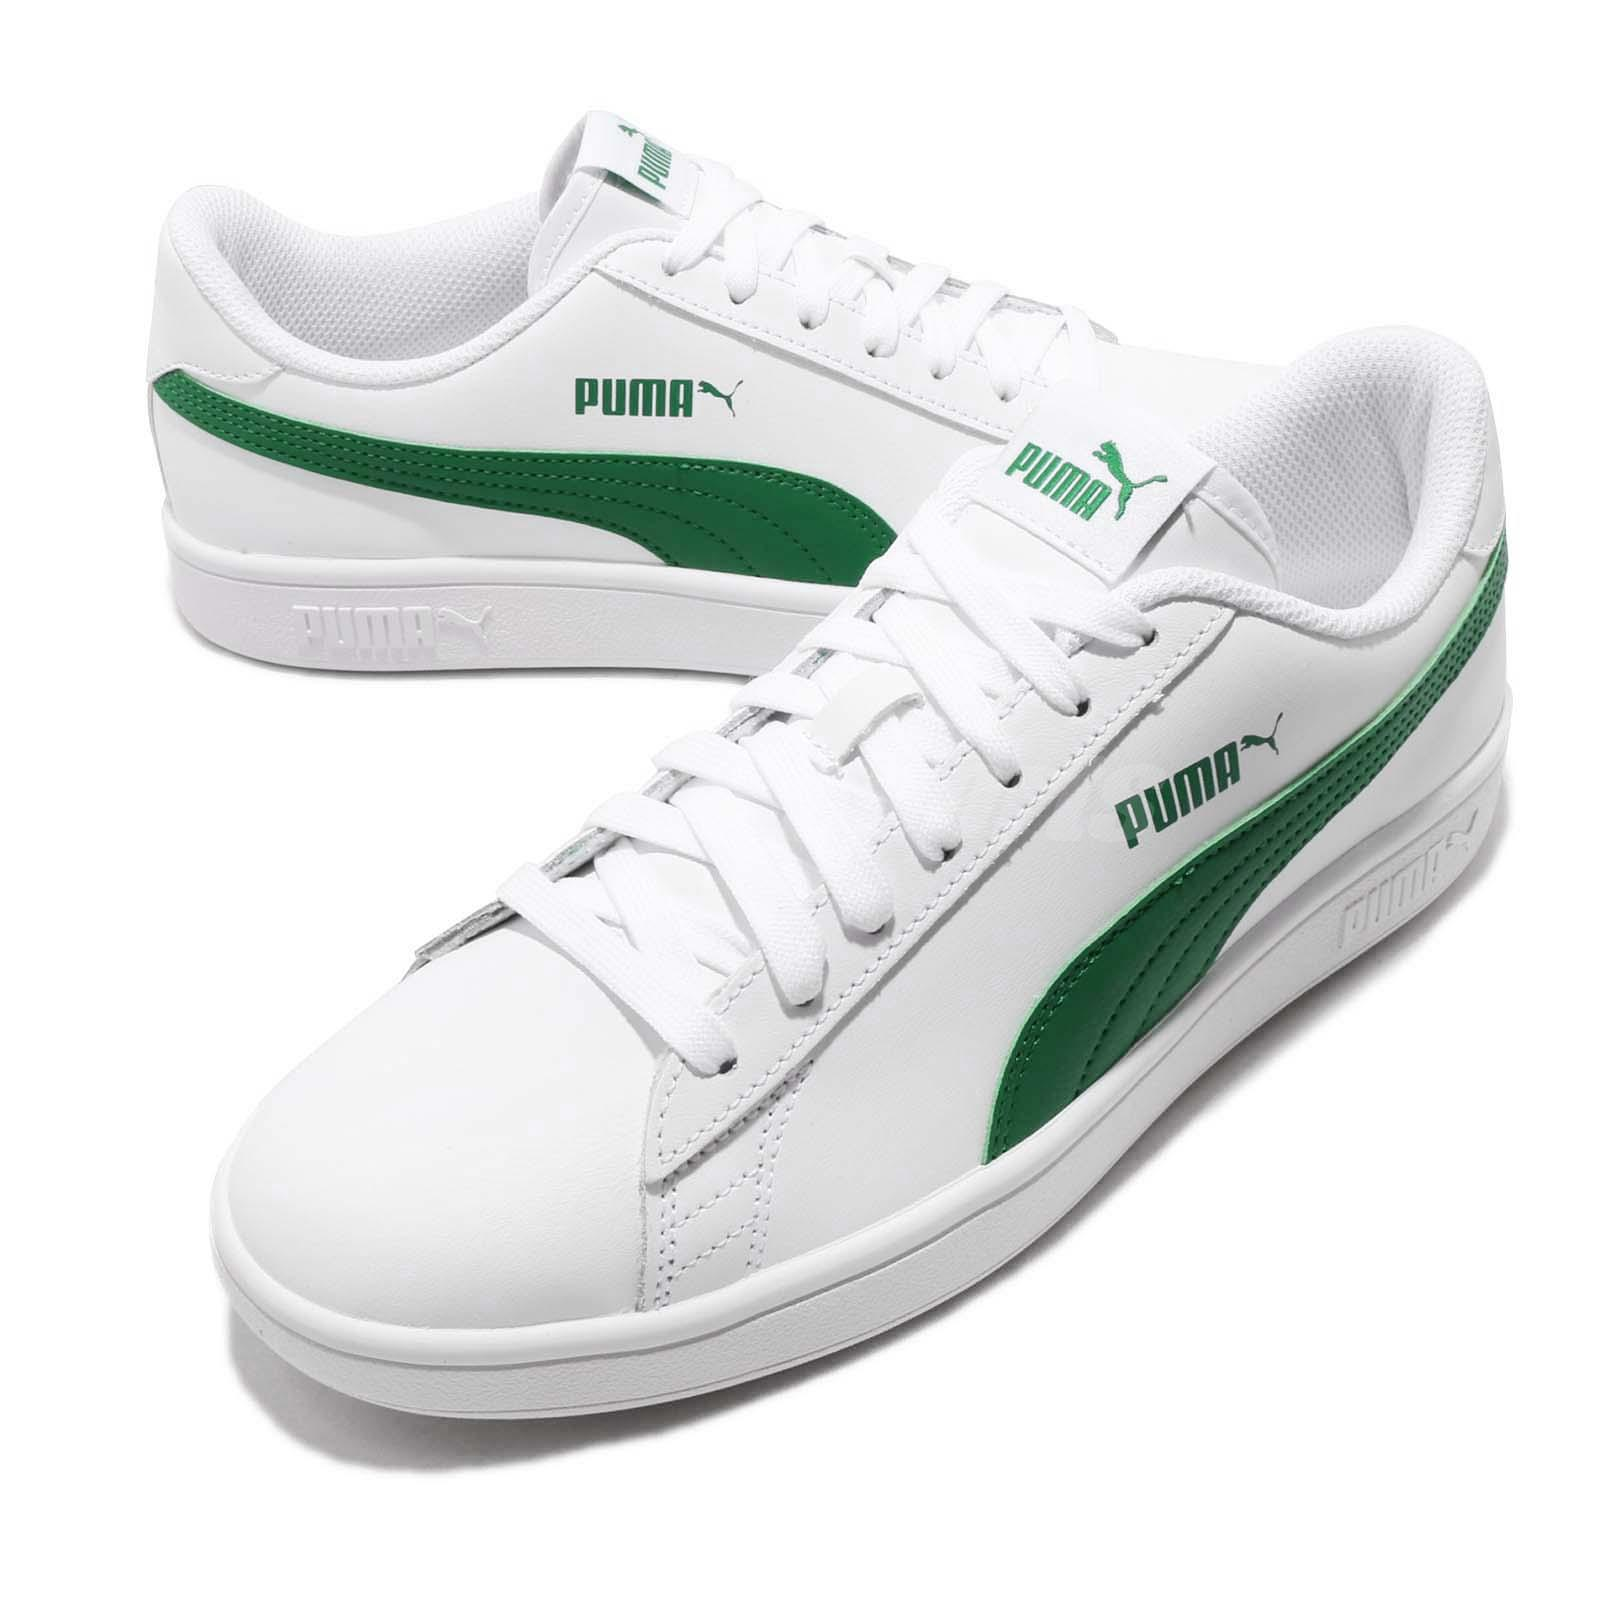 better clearance sale best website Puma Smash V2 L White Amazon Green Men Women Casual Shoes Sneakers ...